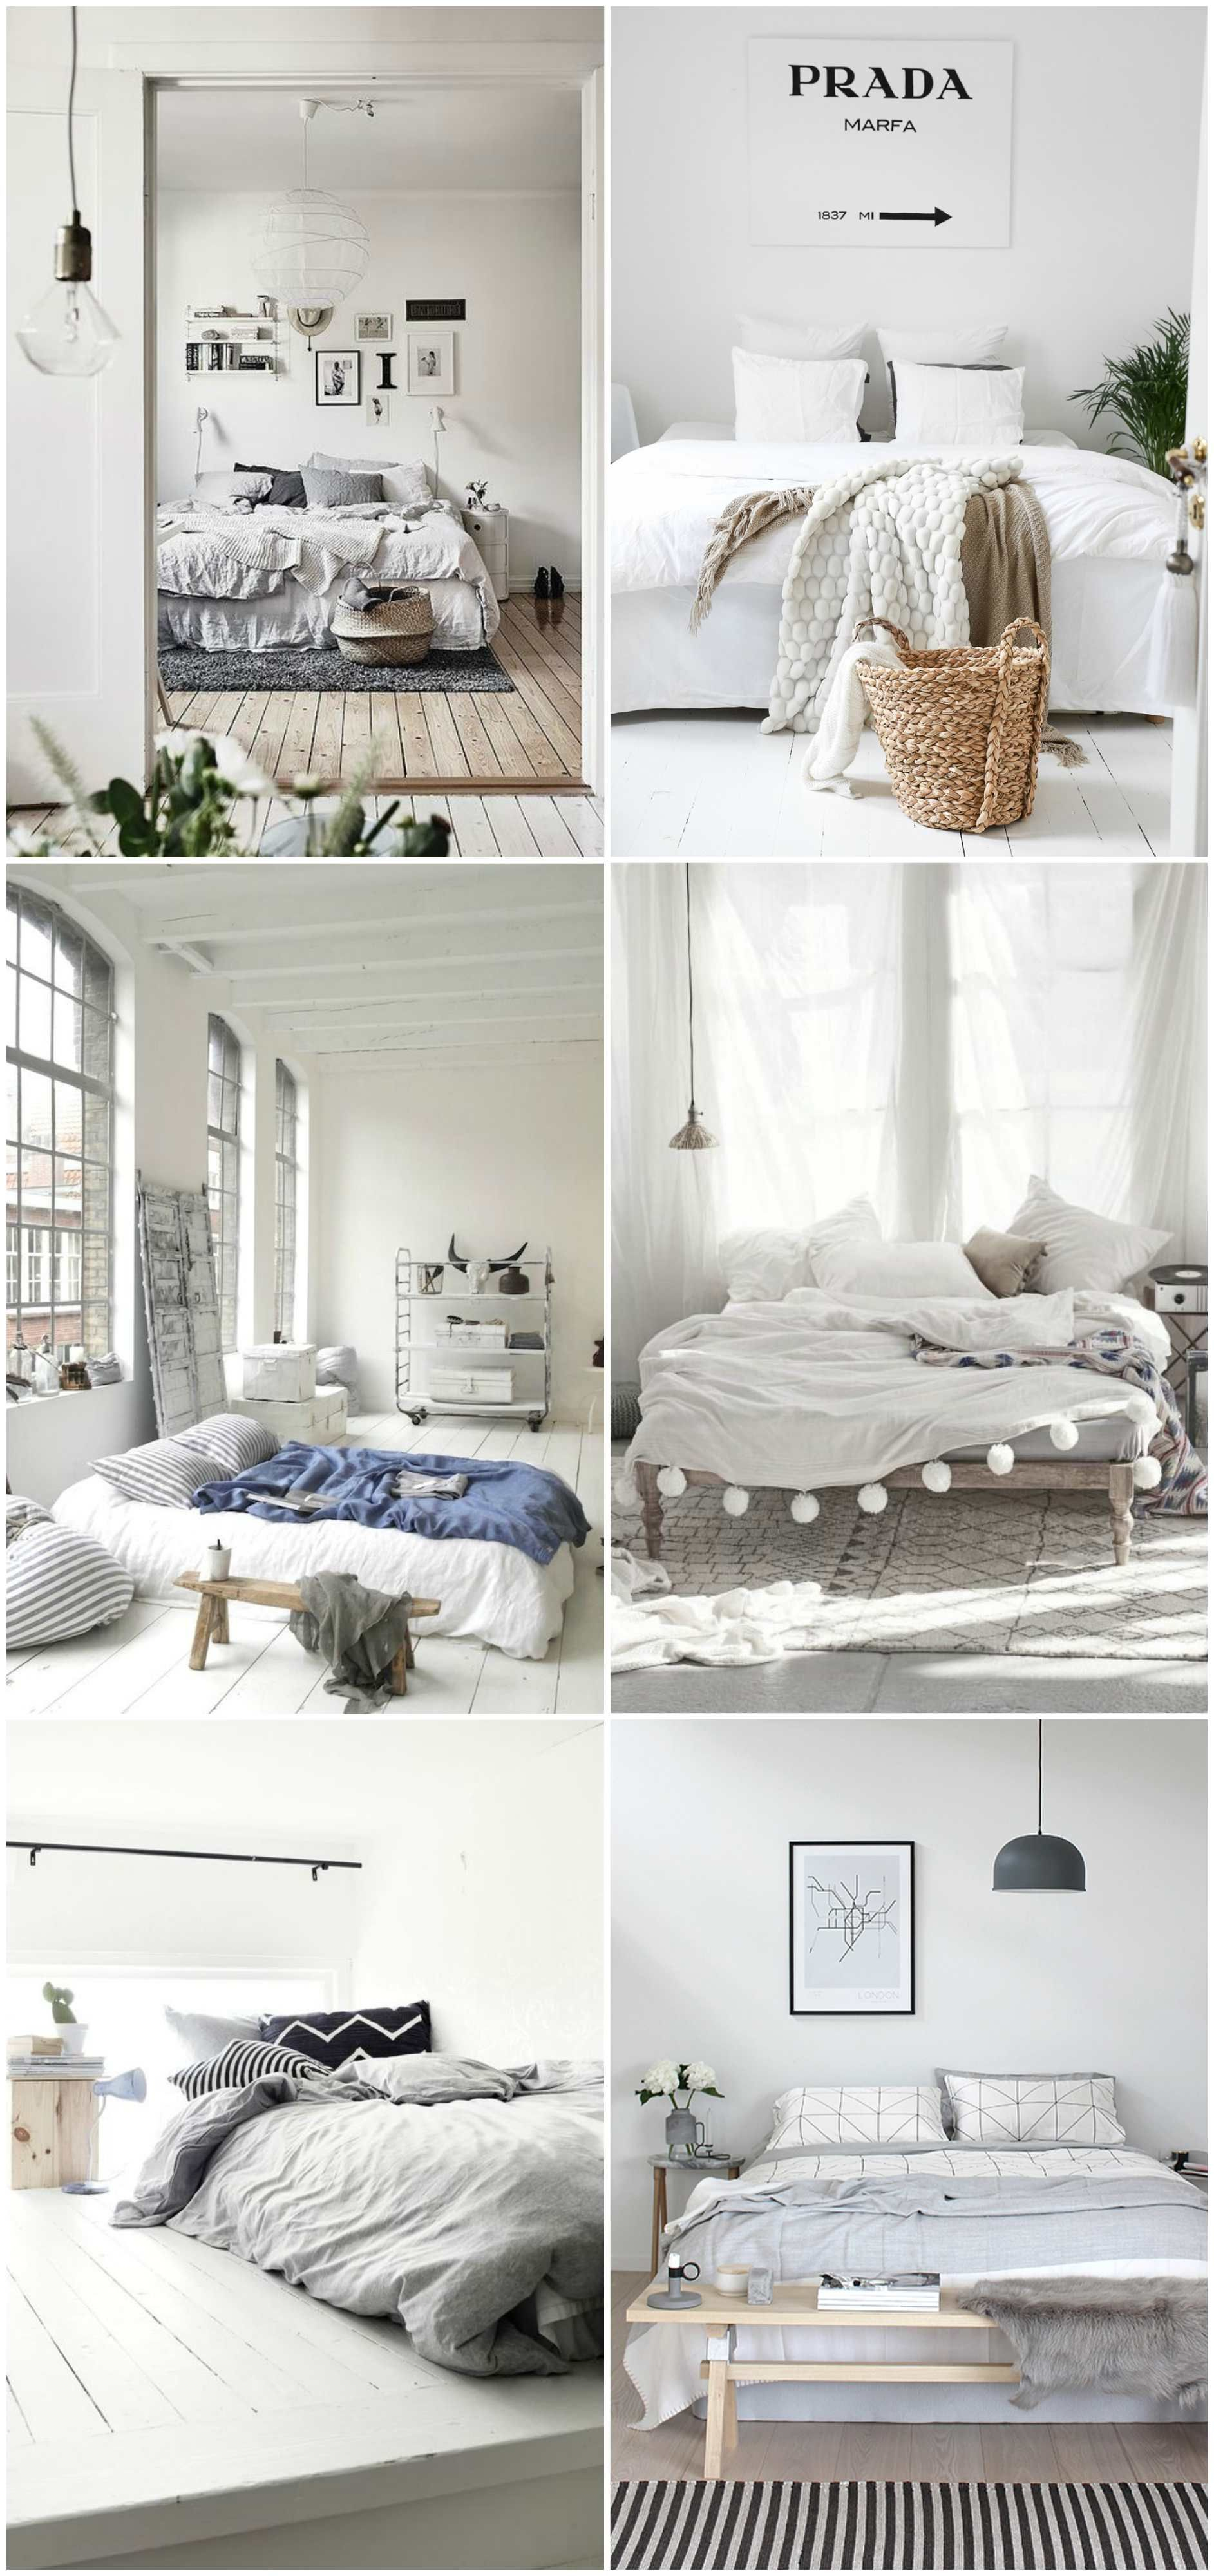 Bedroom Ideas Minimalist minimalist bedroom inspiration | minimalist bedroom, minimalist